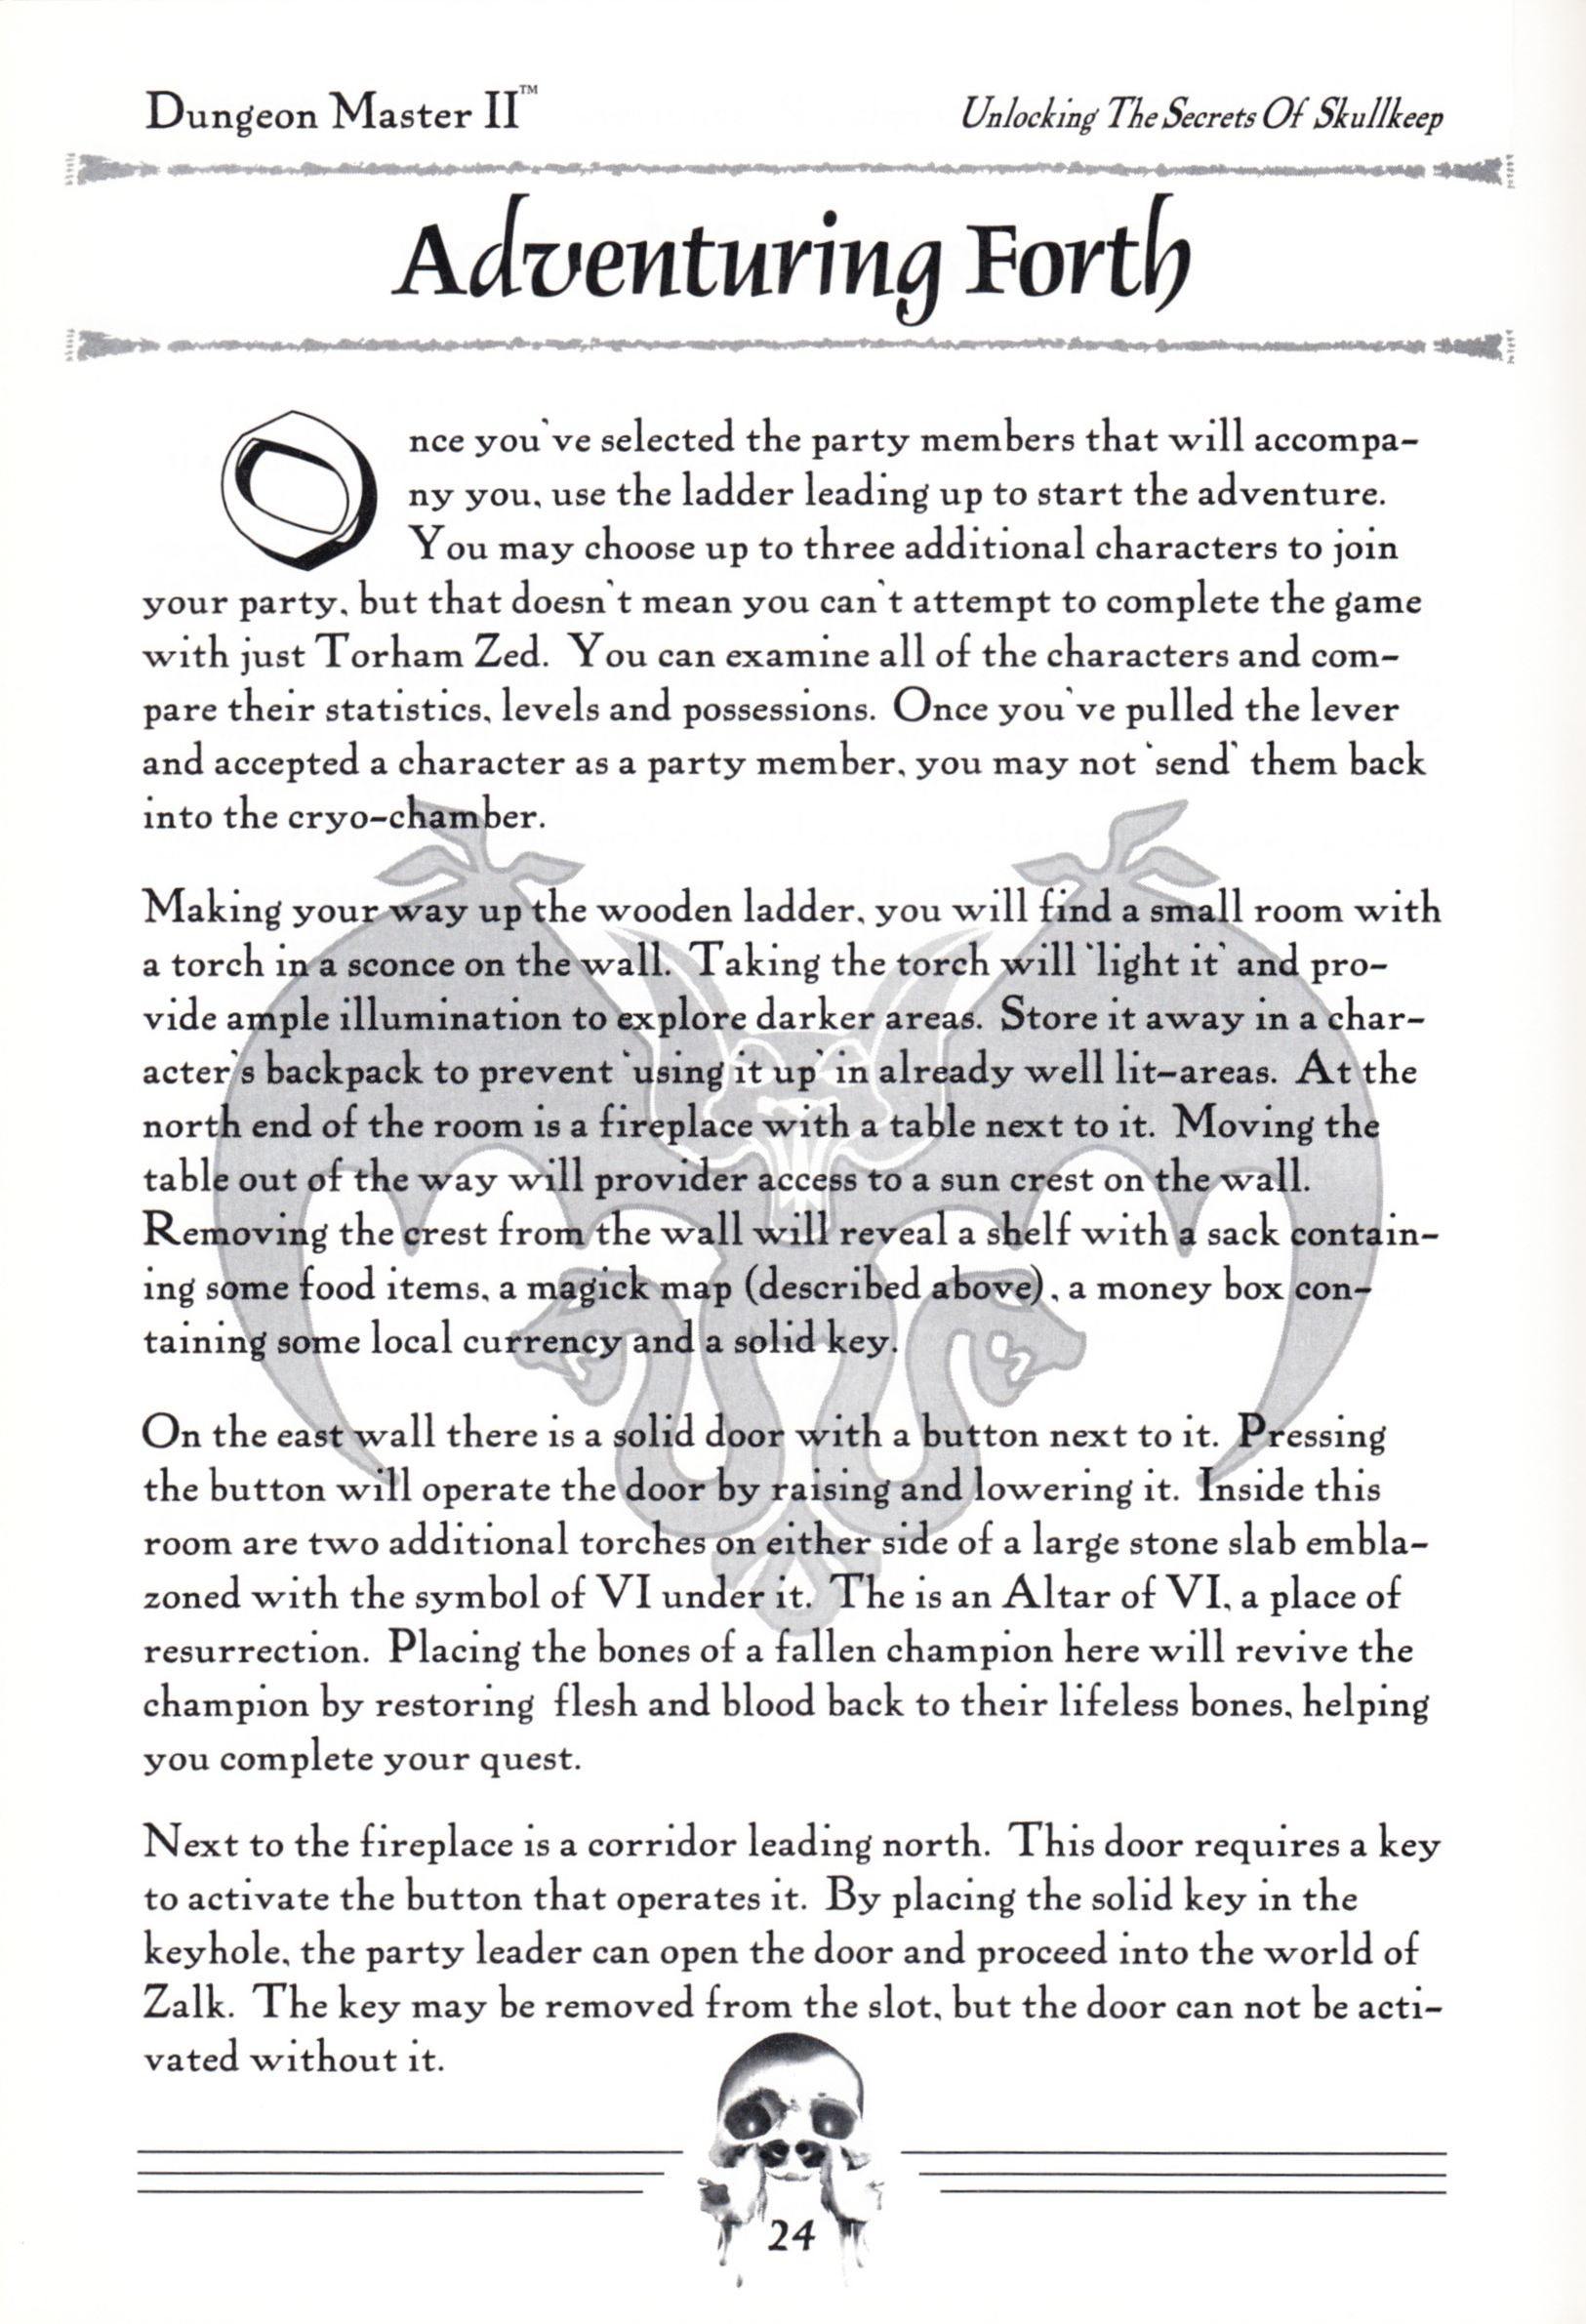 Hint Book - Dungeon Master II Clue Book - US - Page 026 - Scan